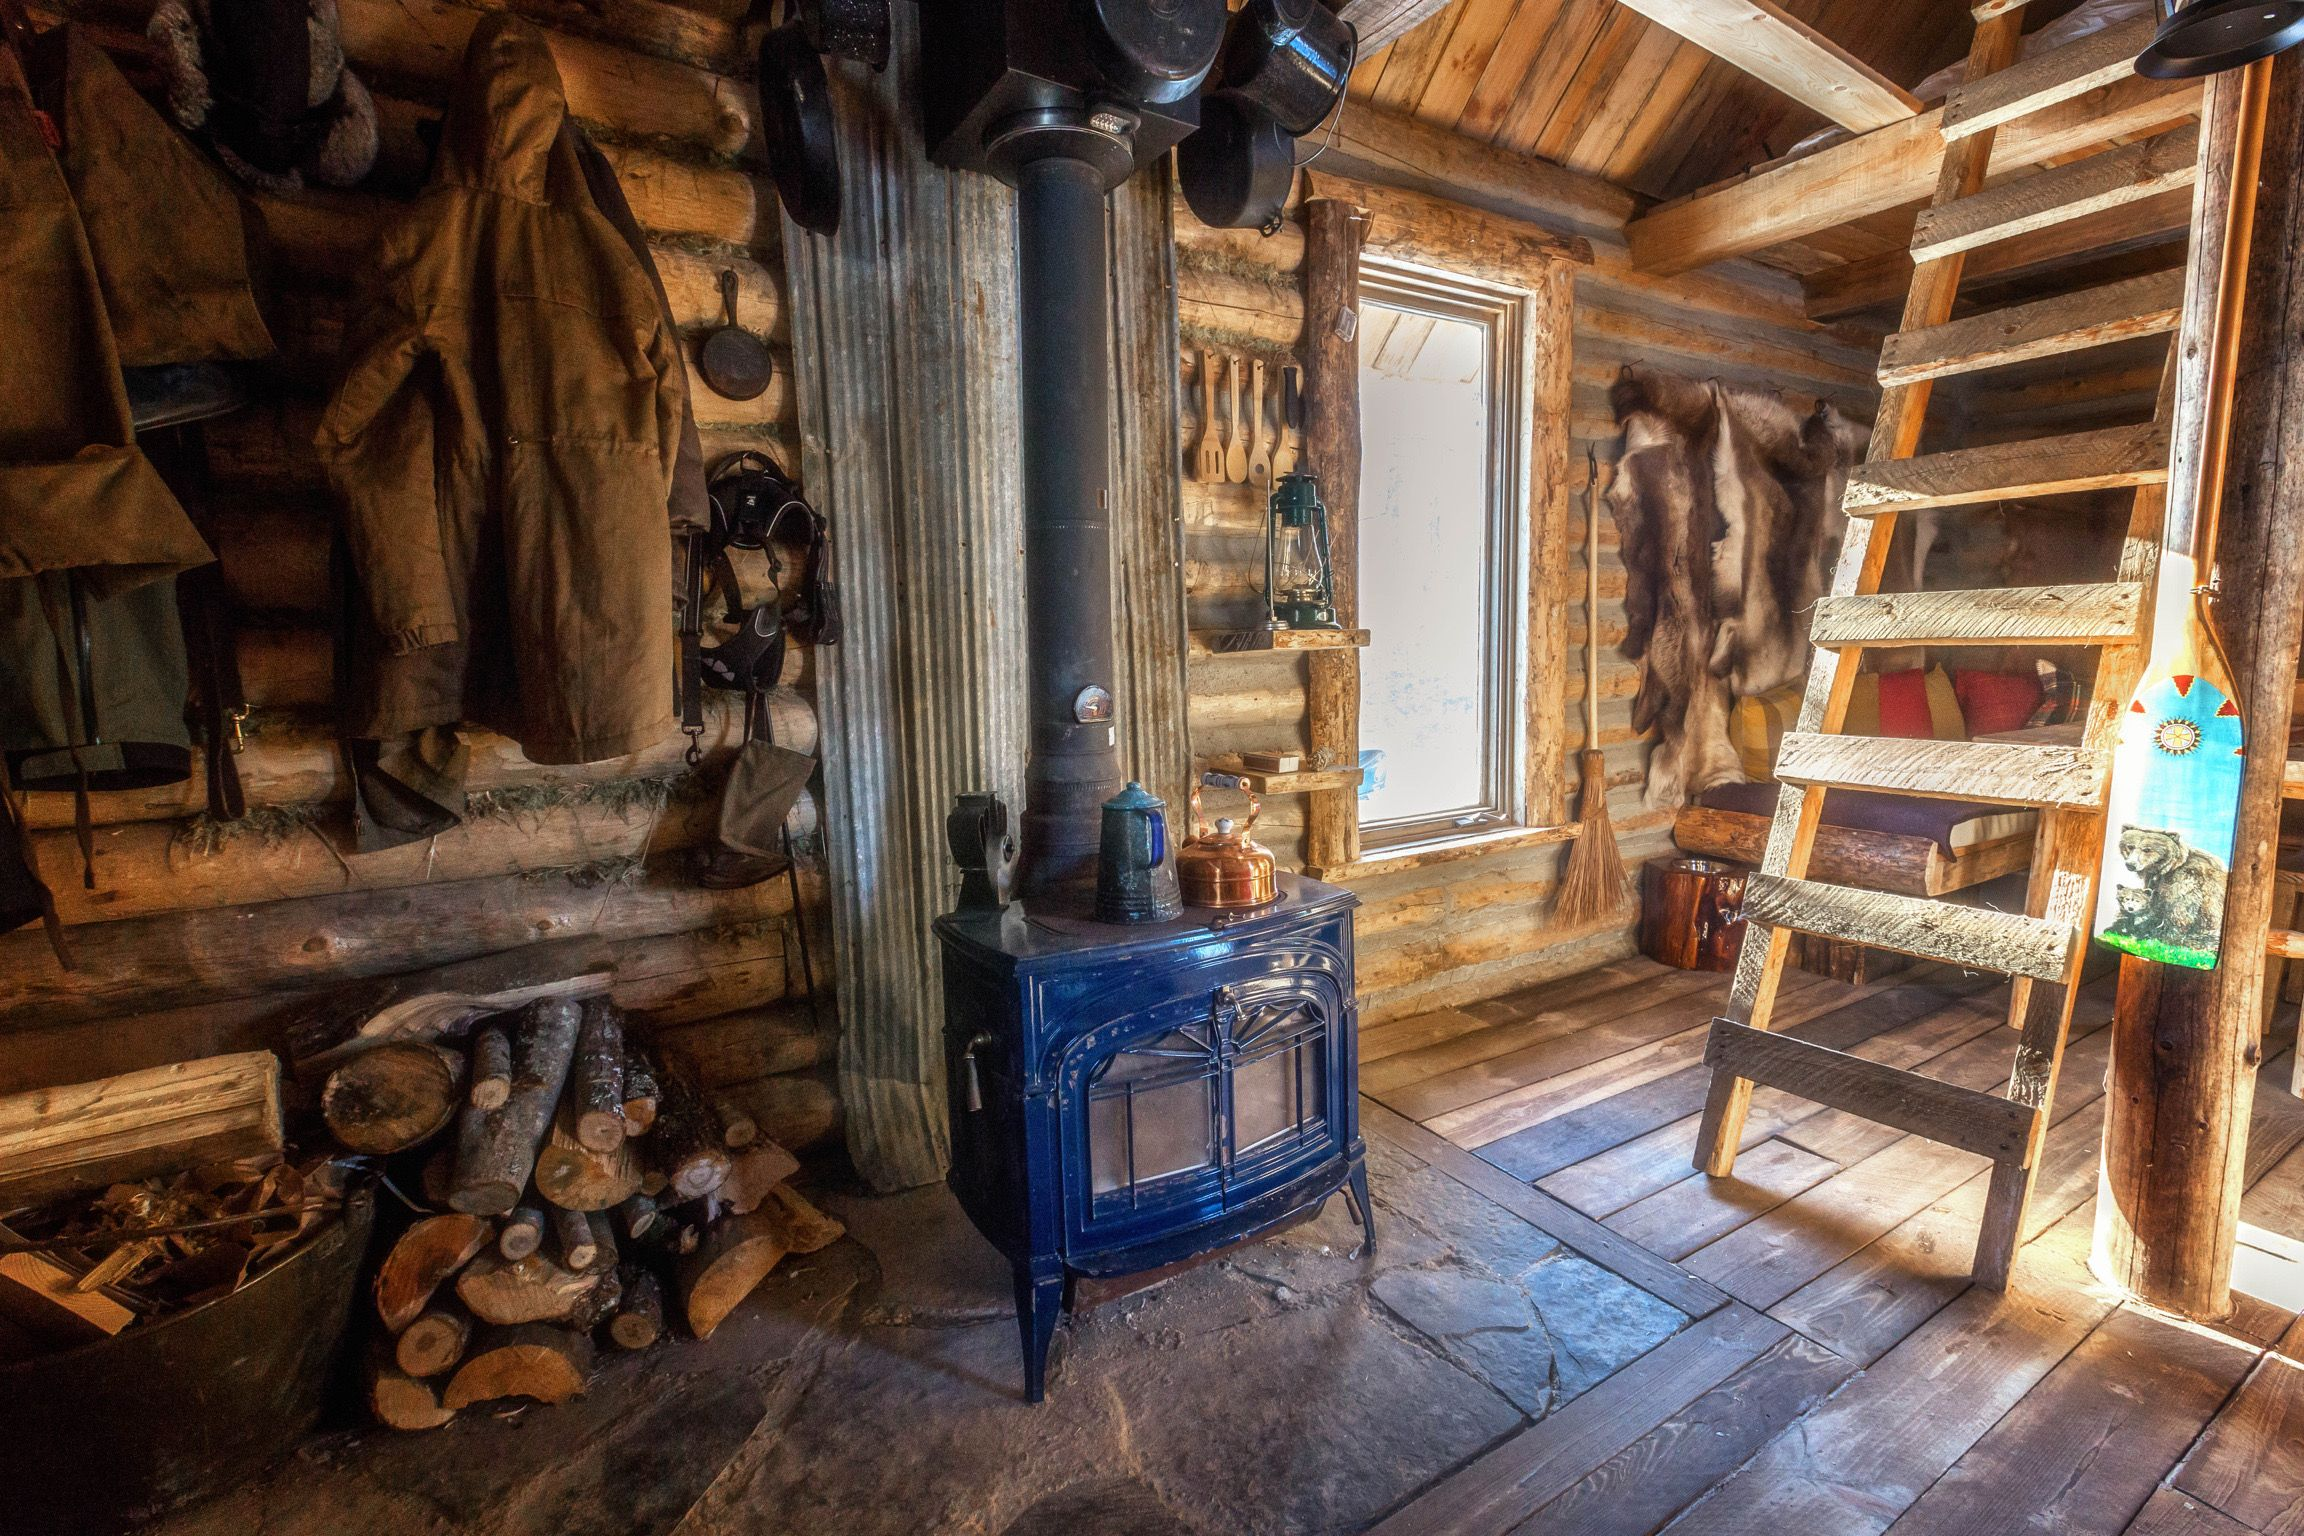 Build This Cozy Cabin Cozy Cabin Magazine Do It Yourself: Mountain Cabin In 2019